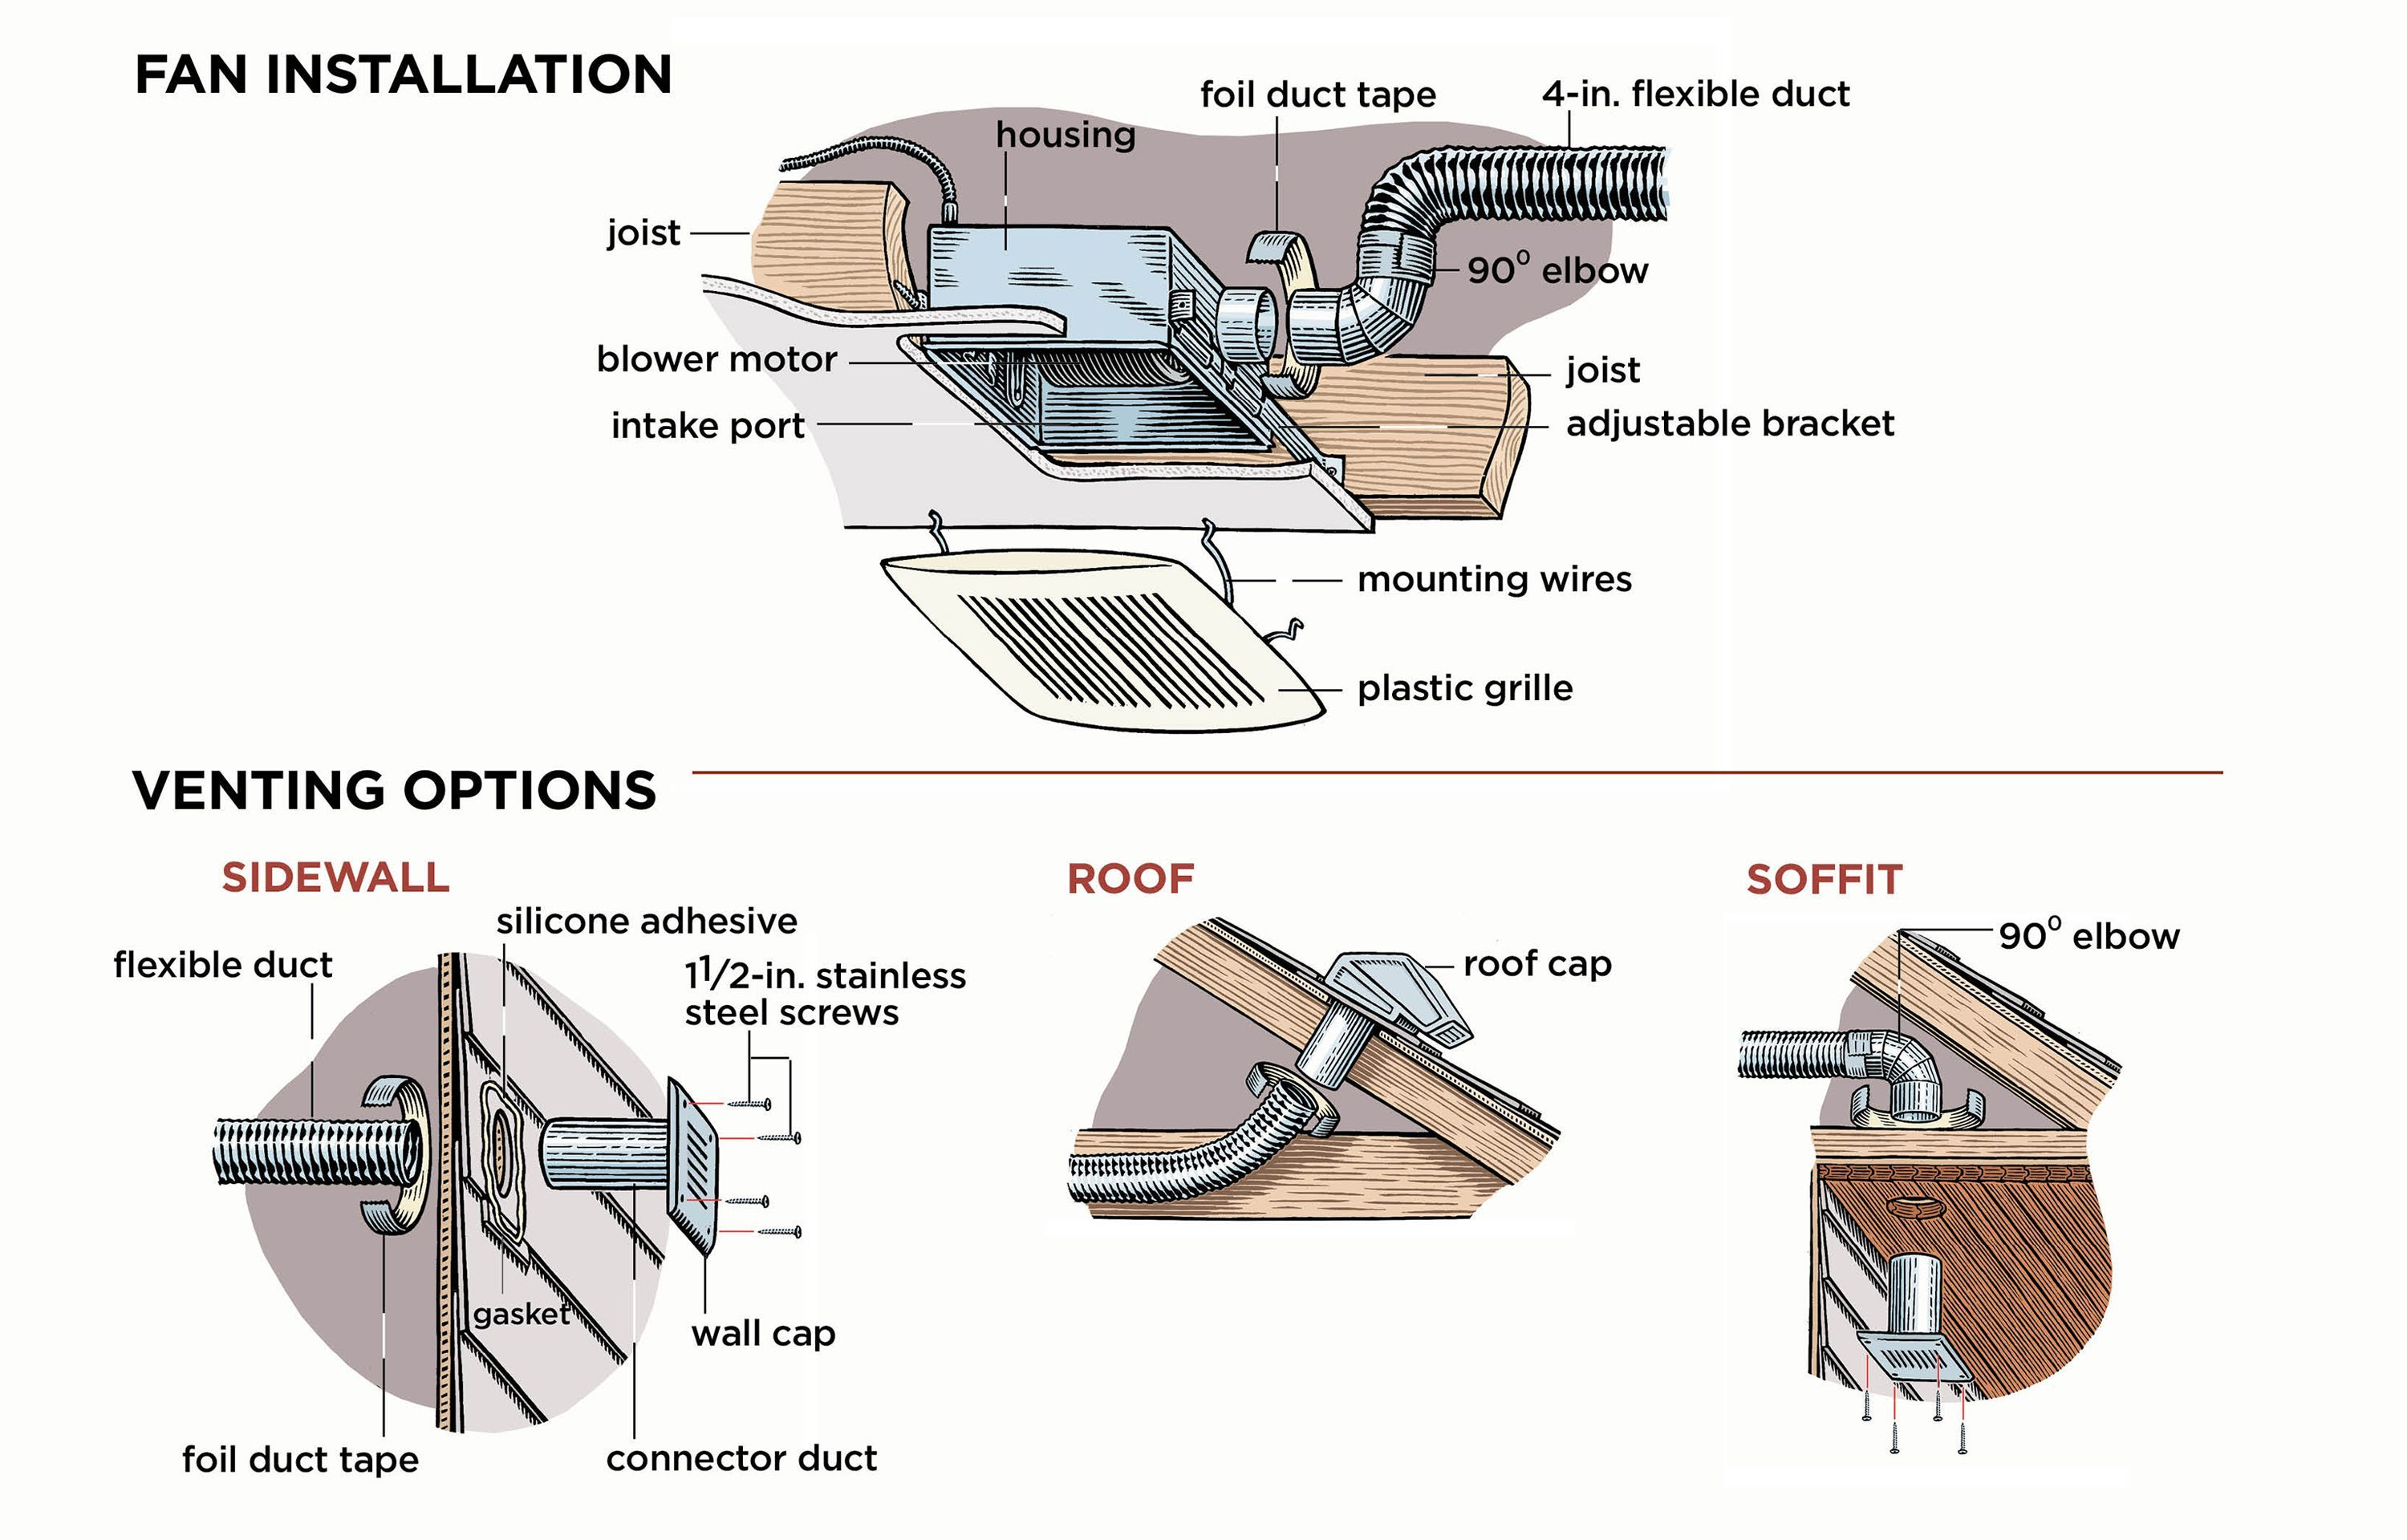 Follow This Step By Step Guide On How To Install A Bathroom Ventilation Fan In Order To Eliminate Fogged Up Wi Bathroom Vent Fan Bathroom Exhaust Bathroom Vent